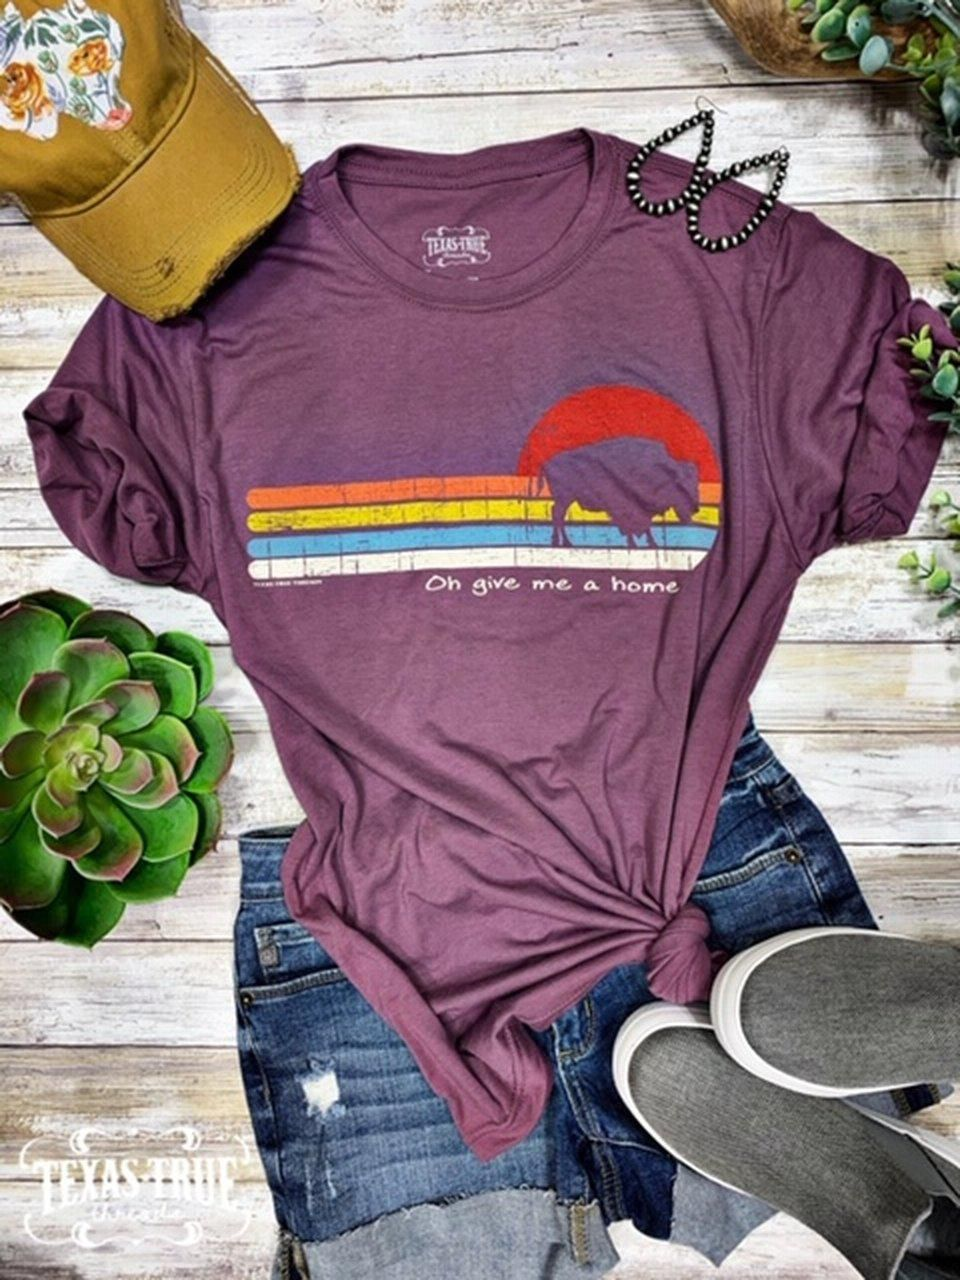 Oh Give Me A Home Graphic T-shirt - Small